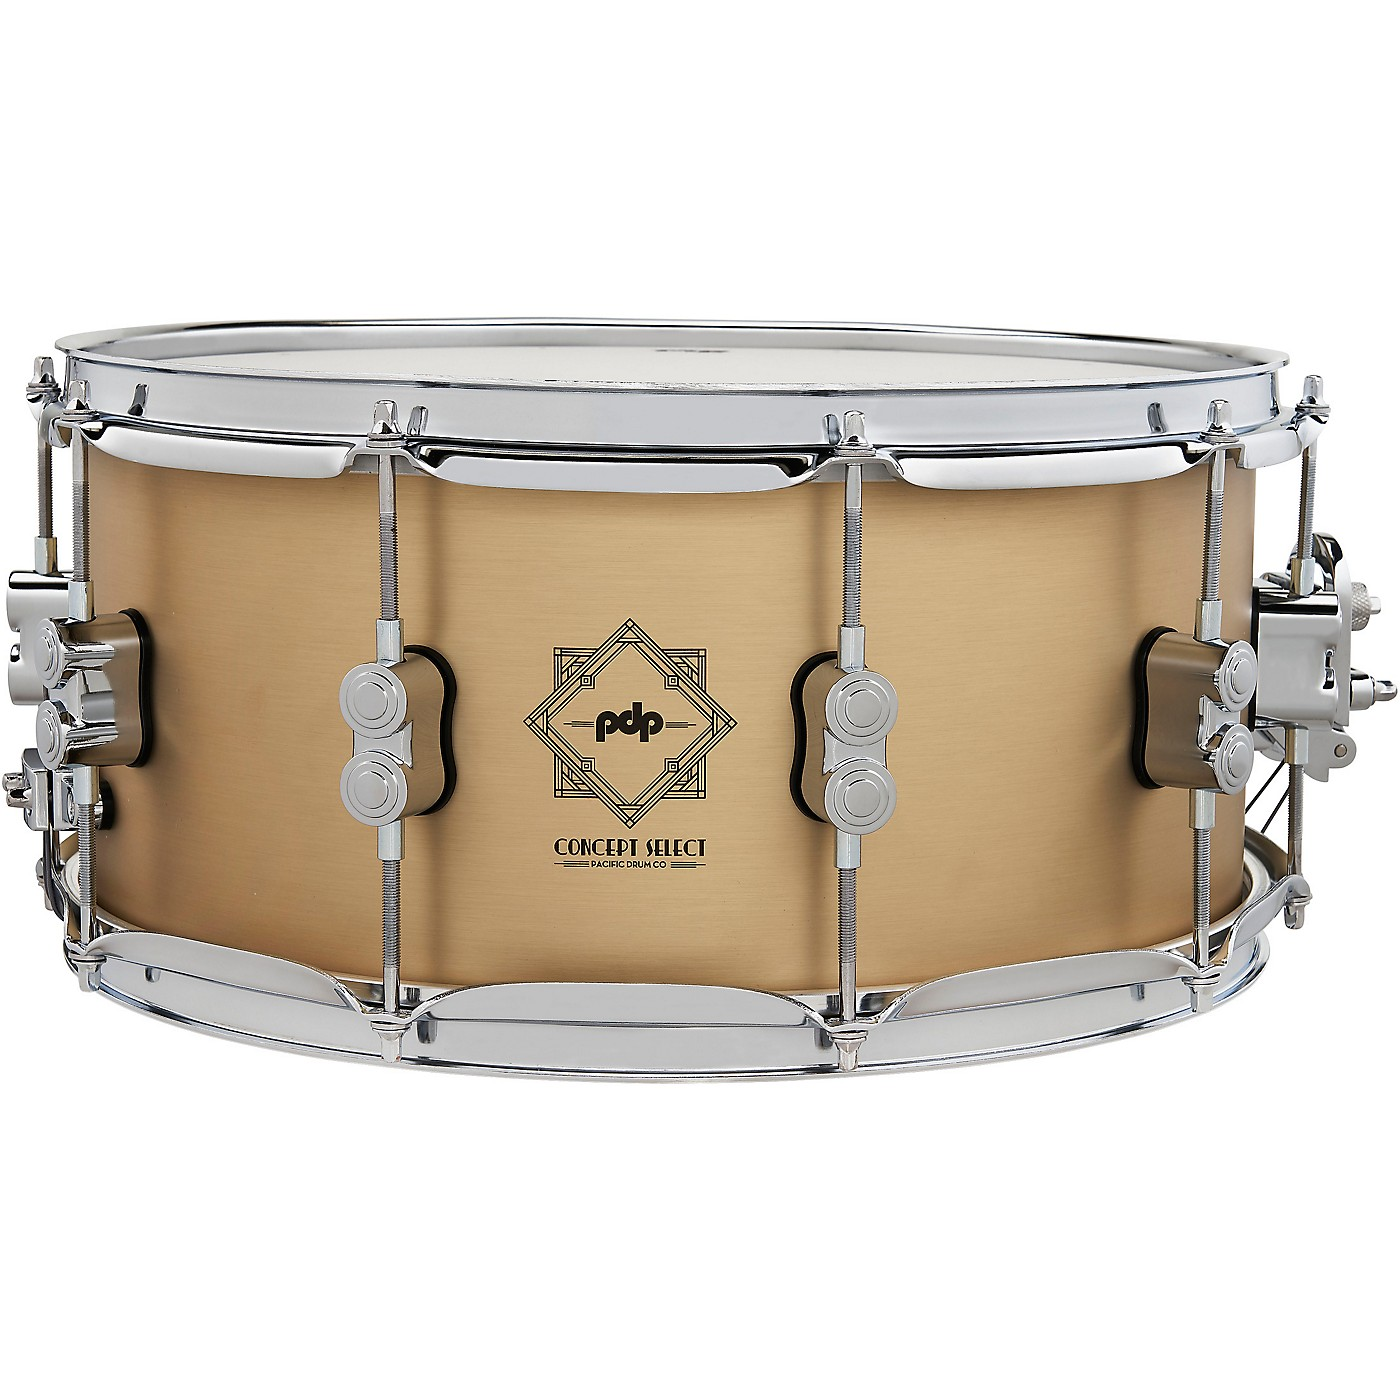 PDP by DW Concept Select Bell Bronze Snare Drum thumbnail